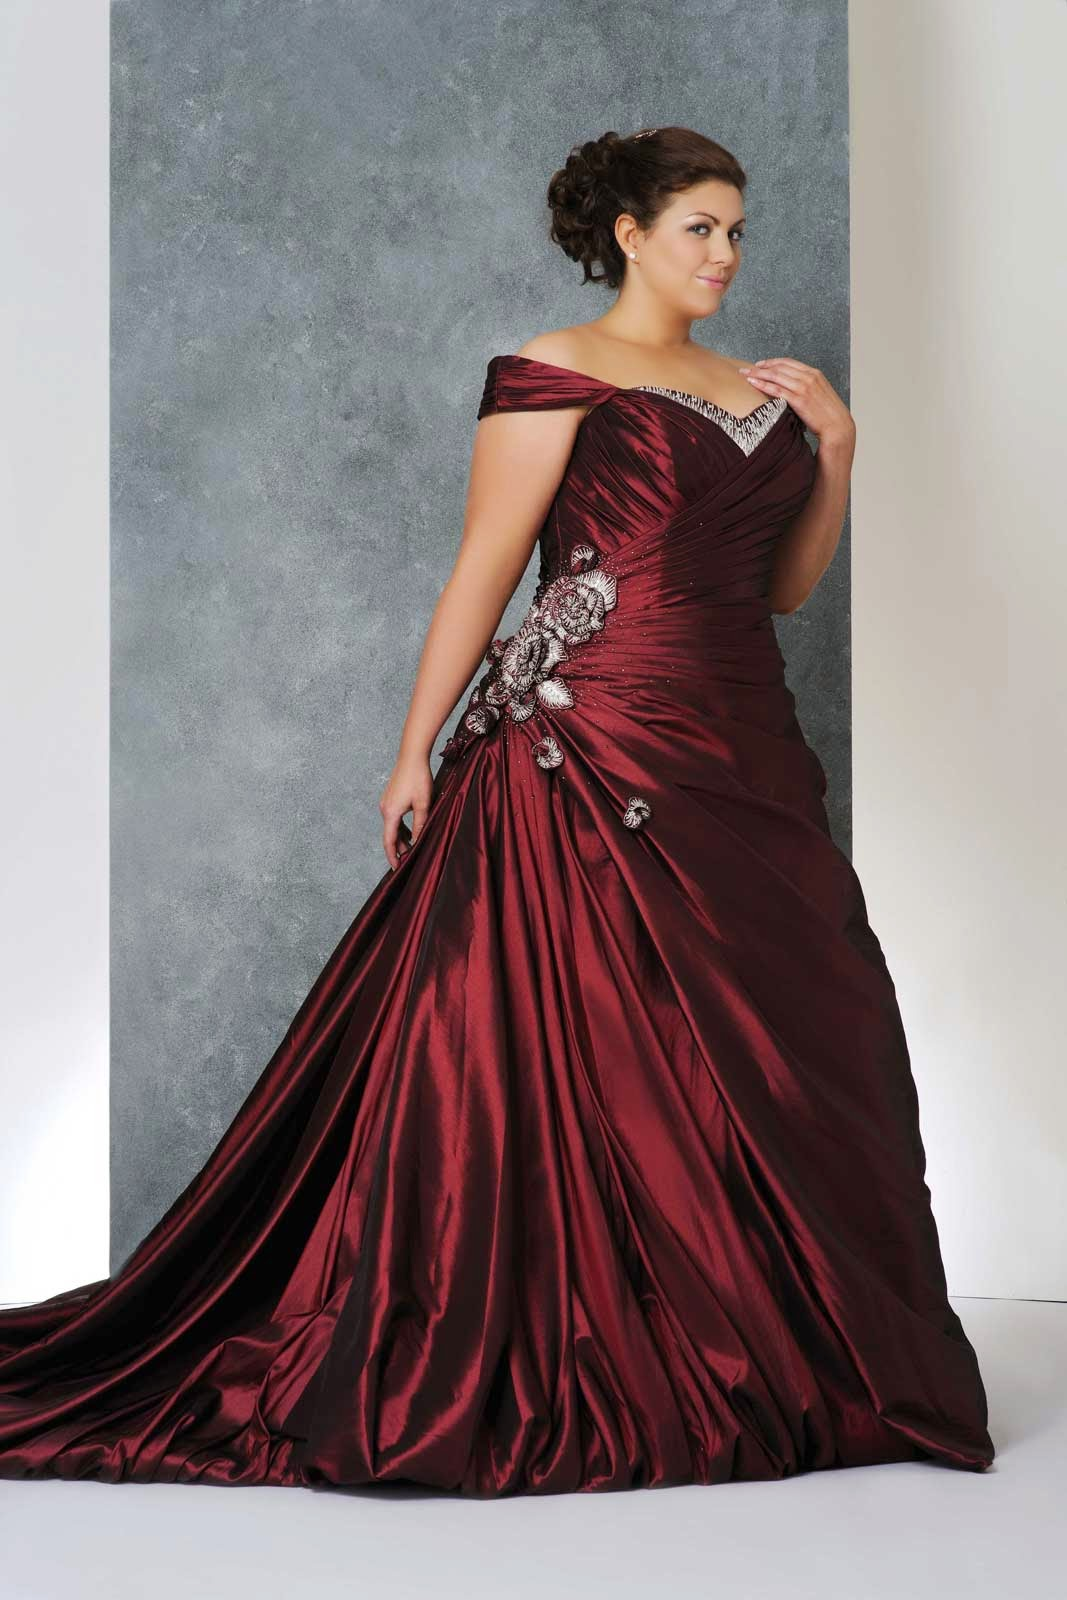 Colored Wedding Dresses for Plus Size Women Photos HD Concepts